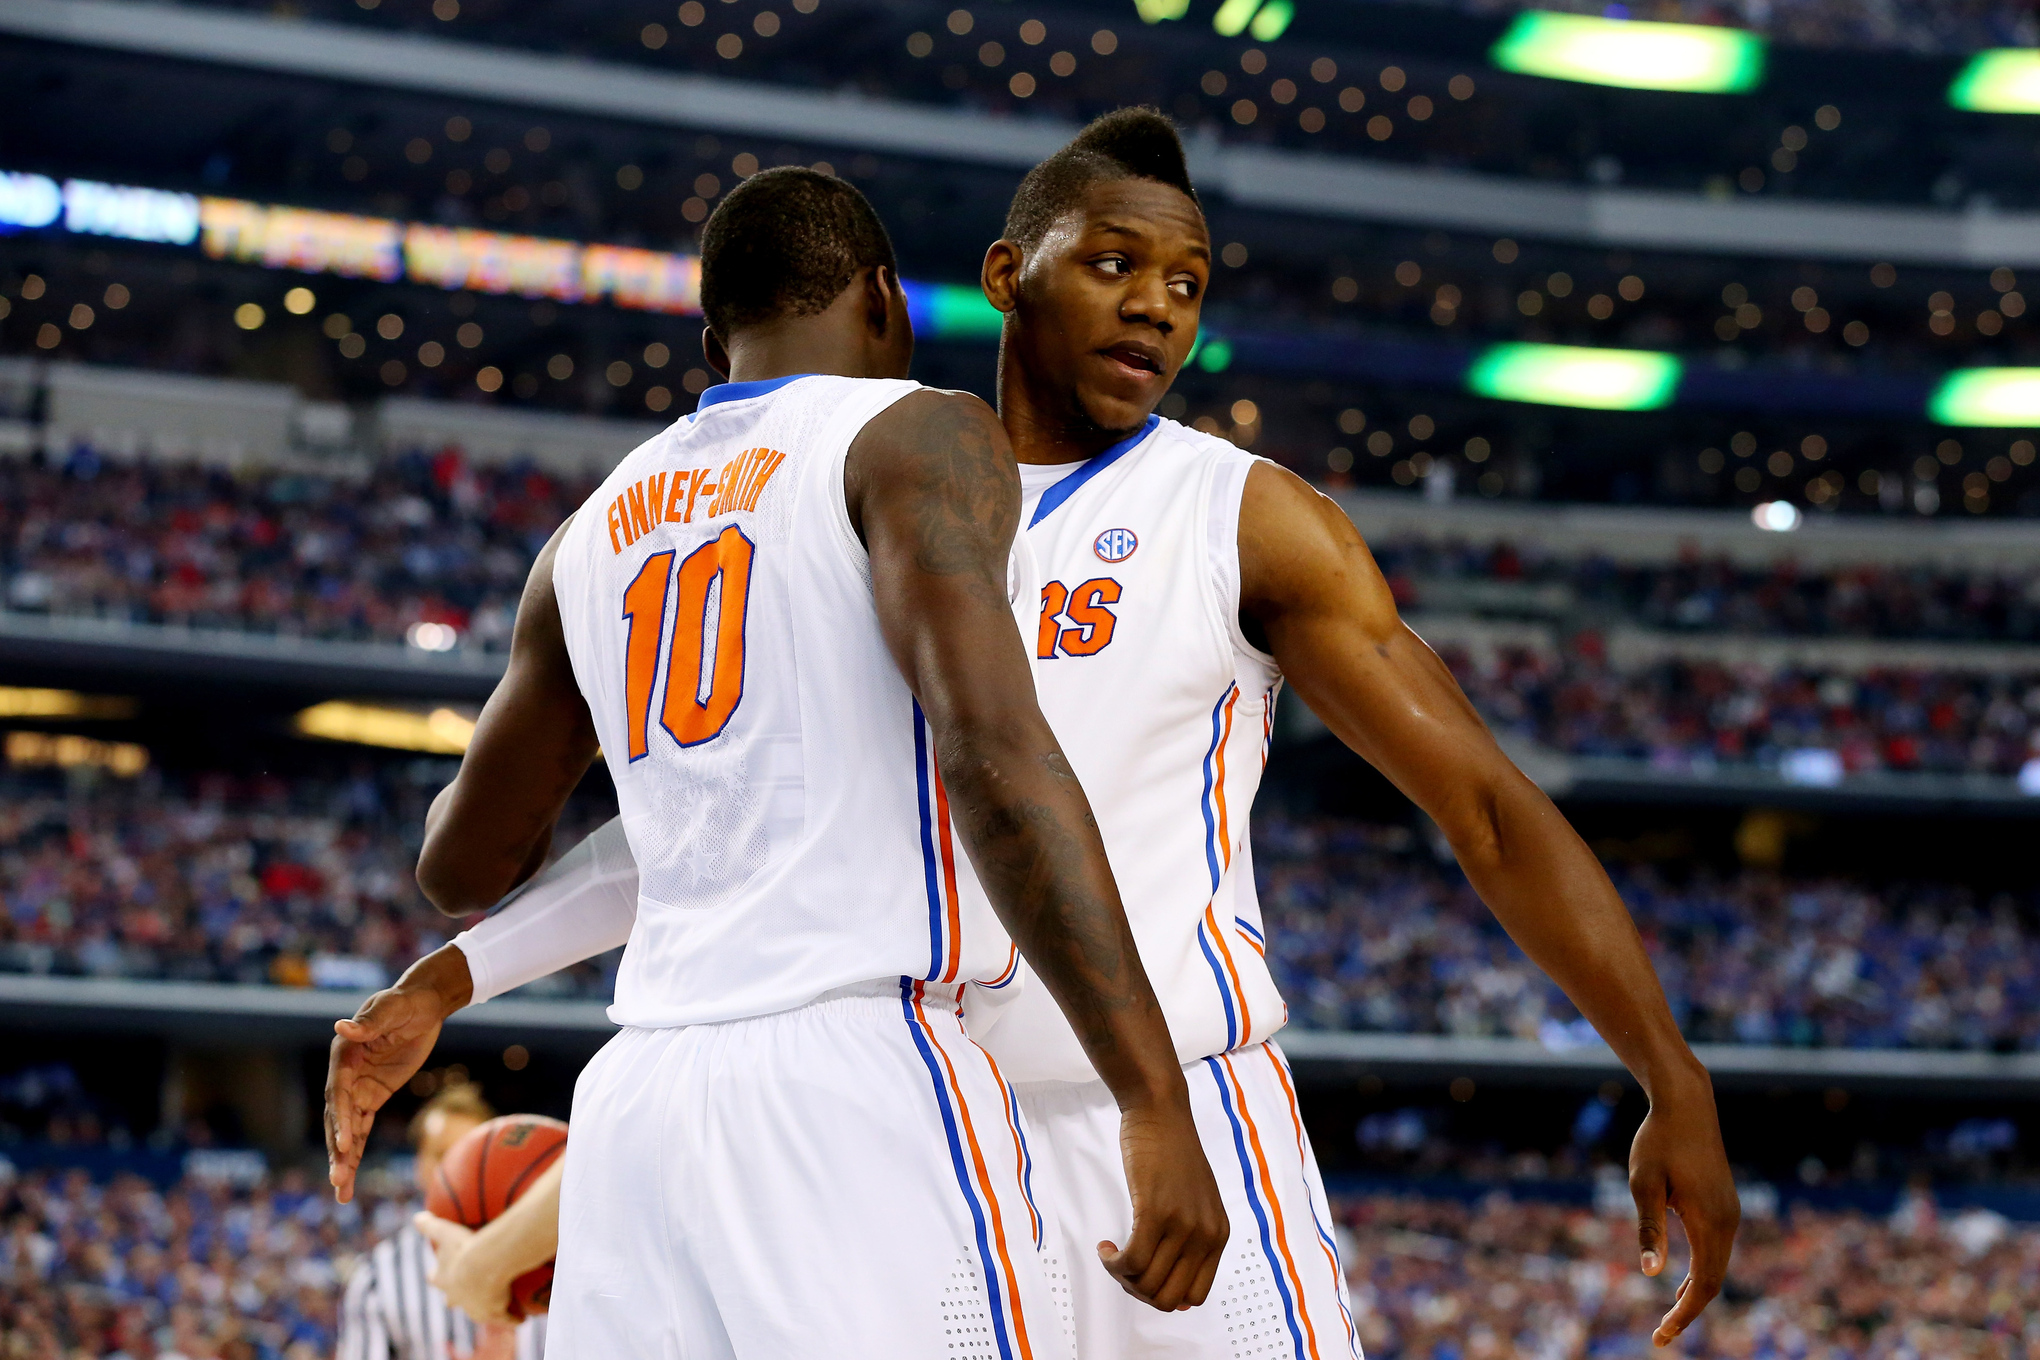 low priced 19bc7 50409 Photos/video: Florida basketball unveils new home uniforms ...